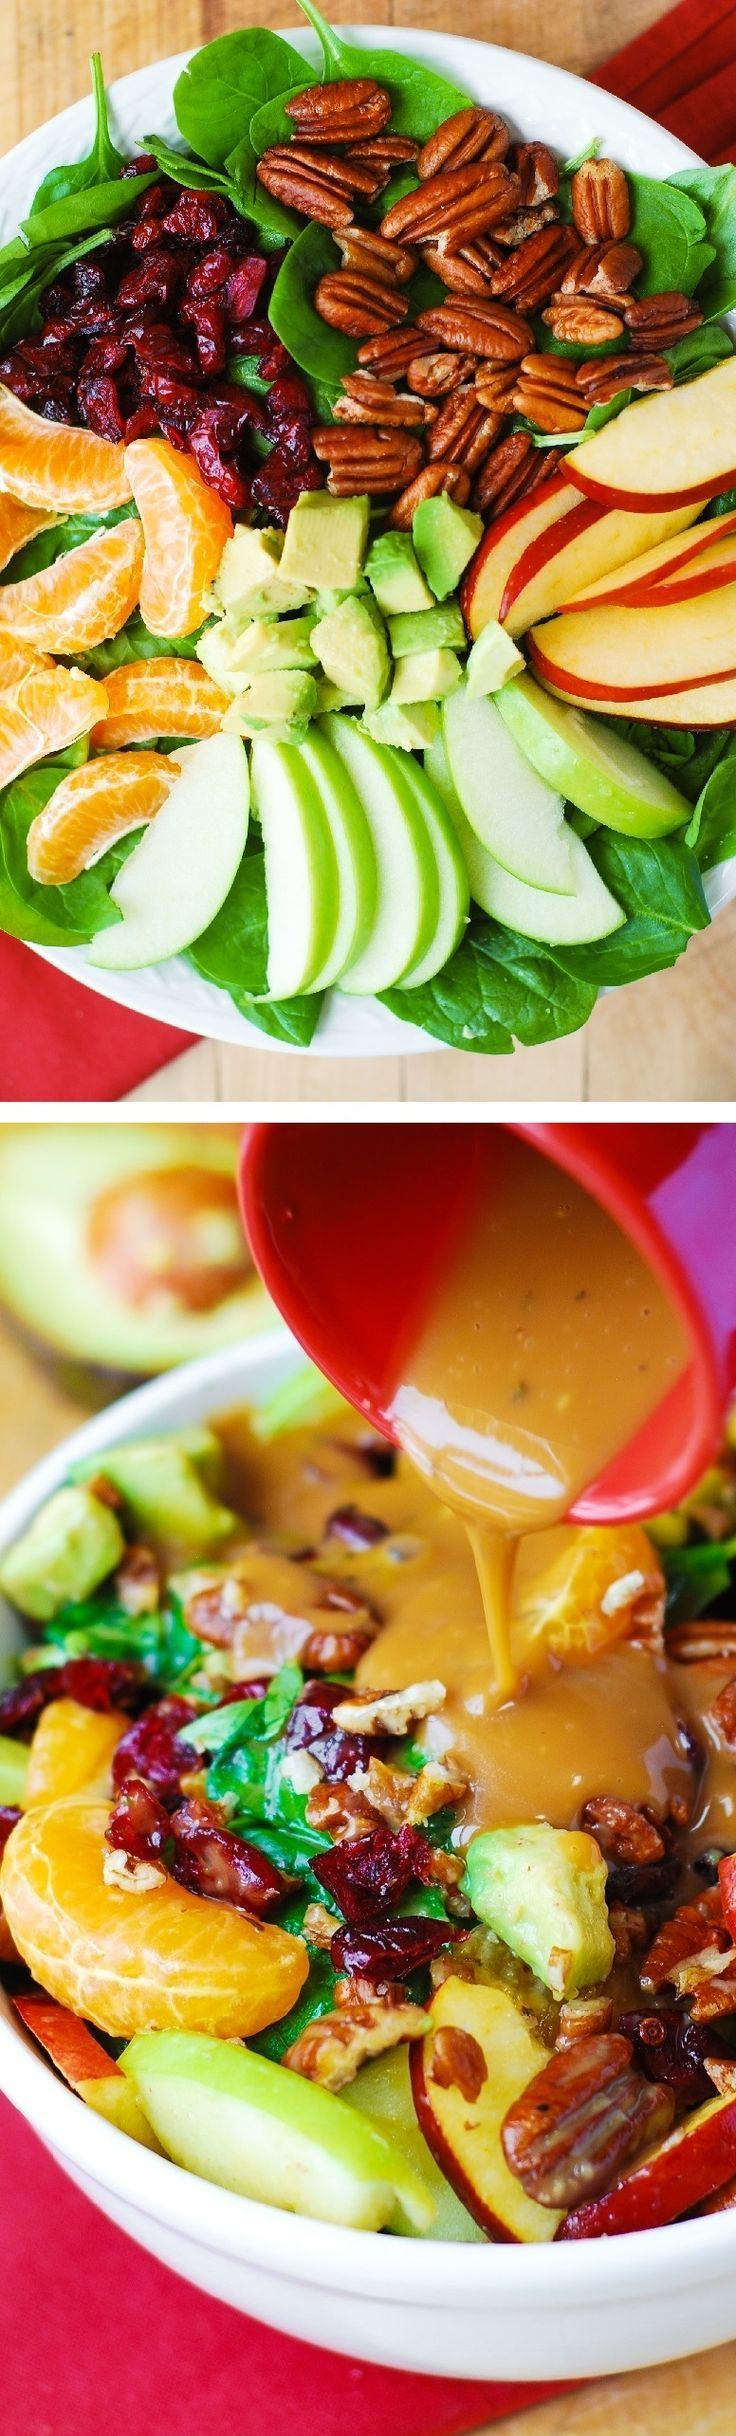 Apple Cranberry Spinach Salad Recipe. Ingredients include ...